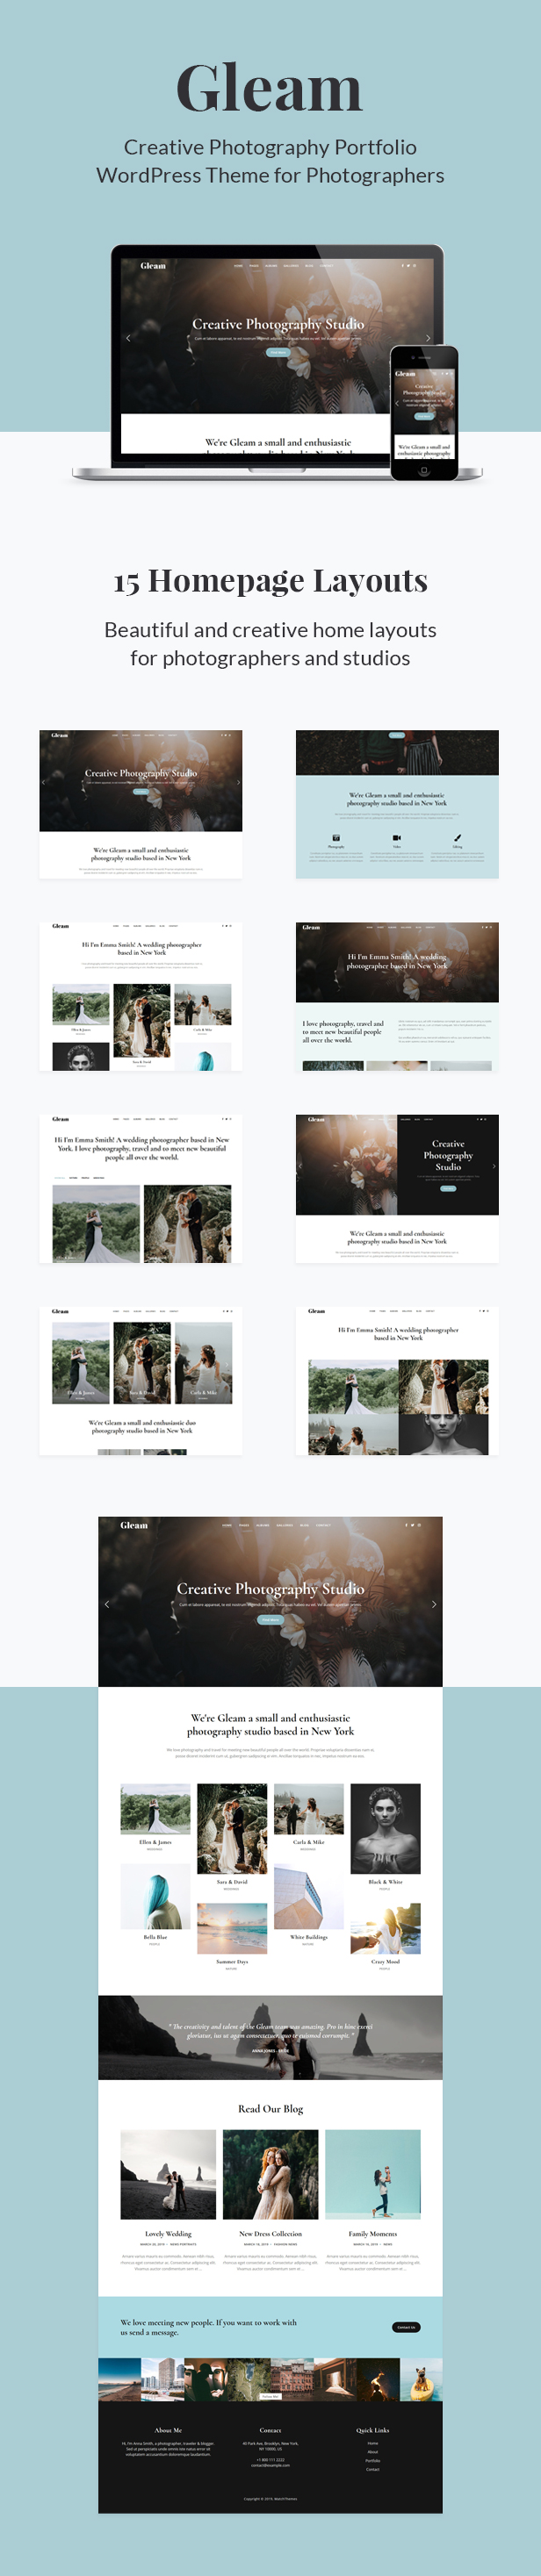 Gleam - Portfolio Photography WordPress Theme - 1